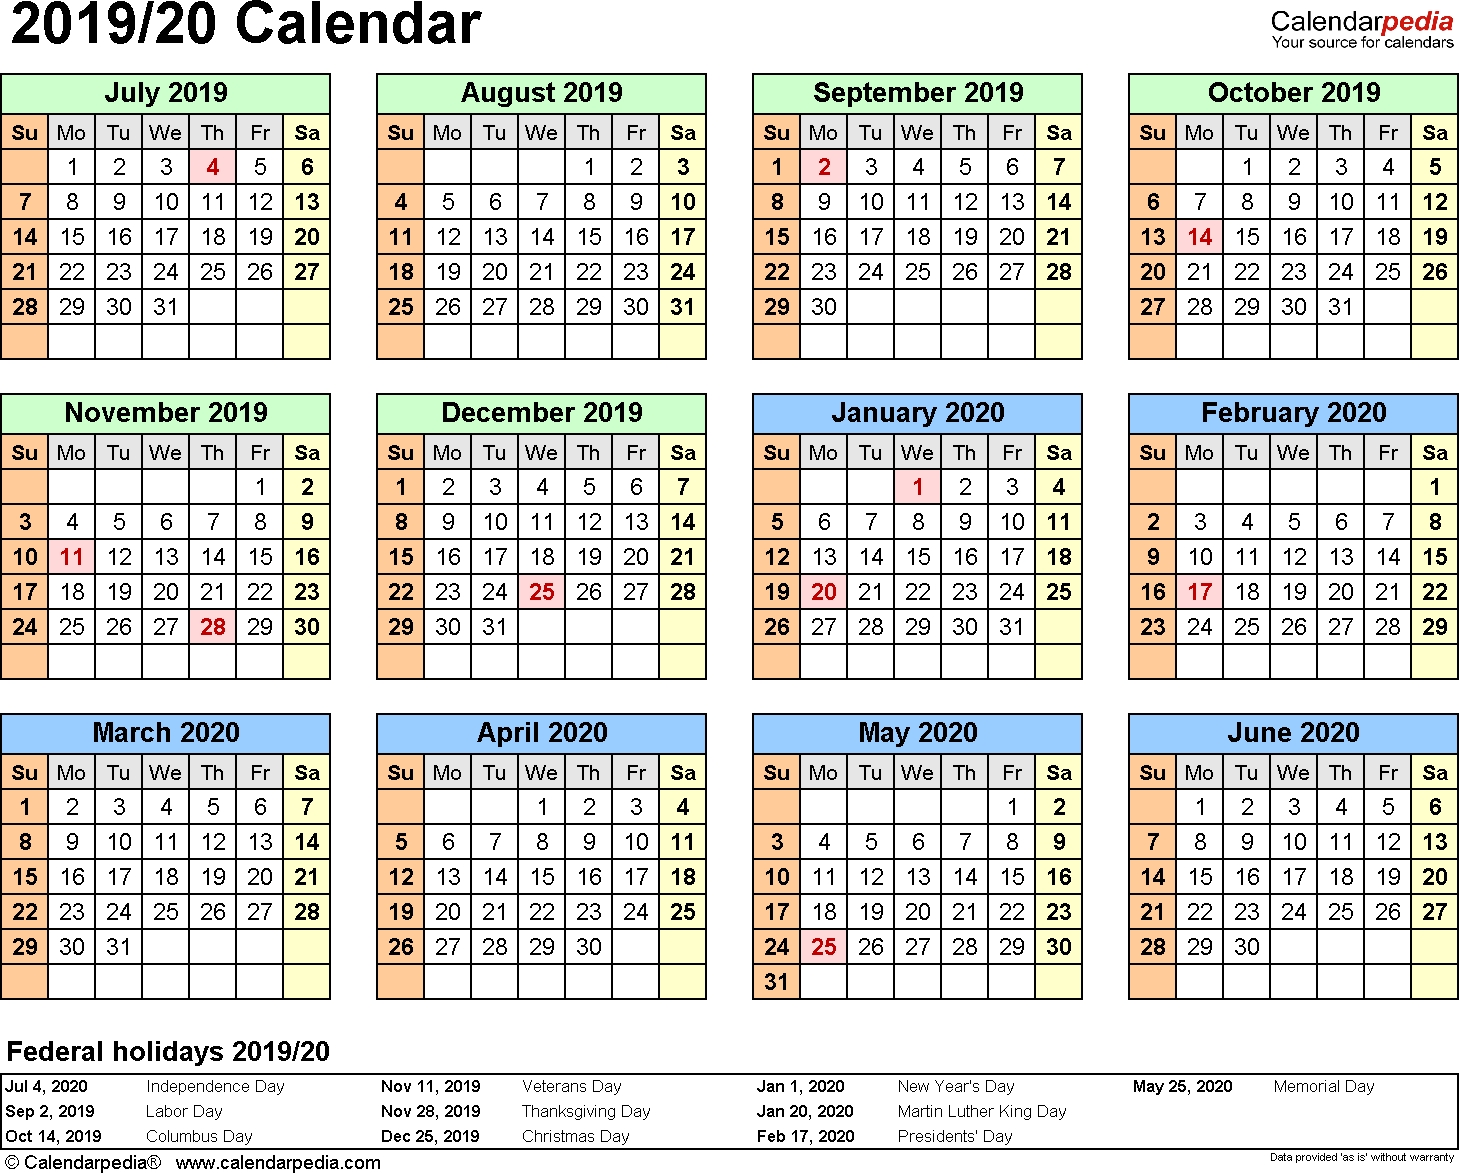 Split Year Calendar 2019/20 (July To June) - Word Templates for Free At A Glance Editable Calendar July 2019-June 2020